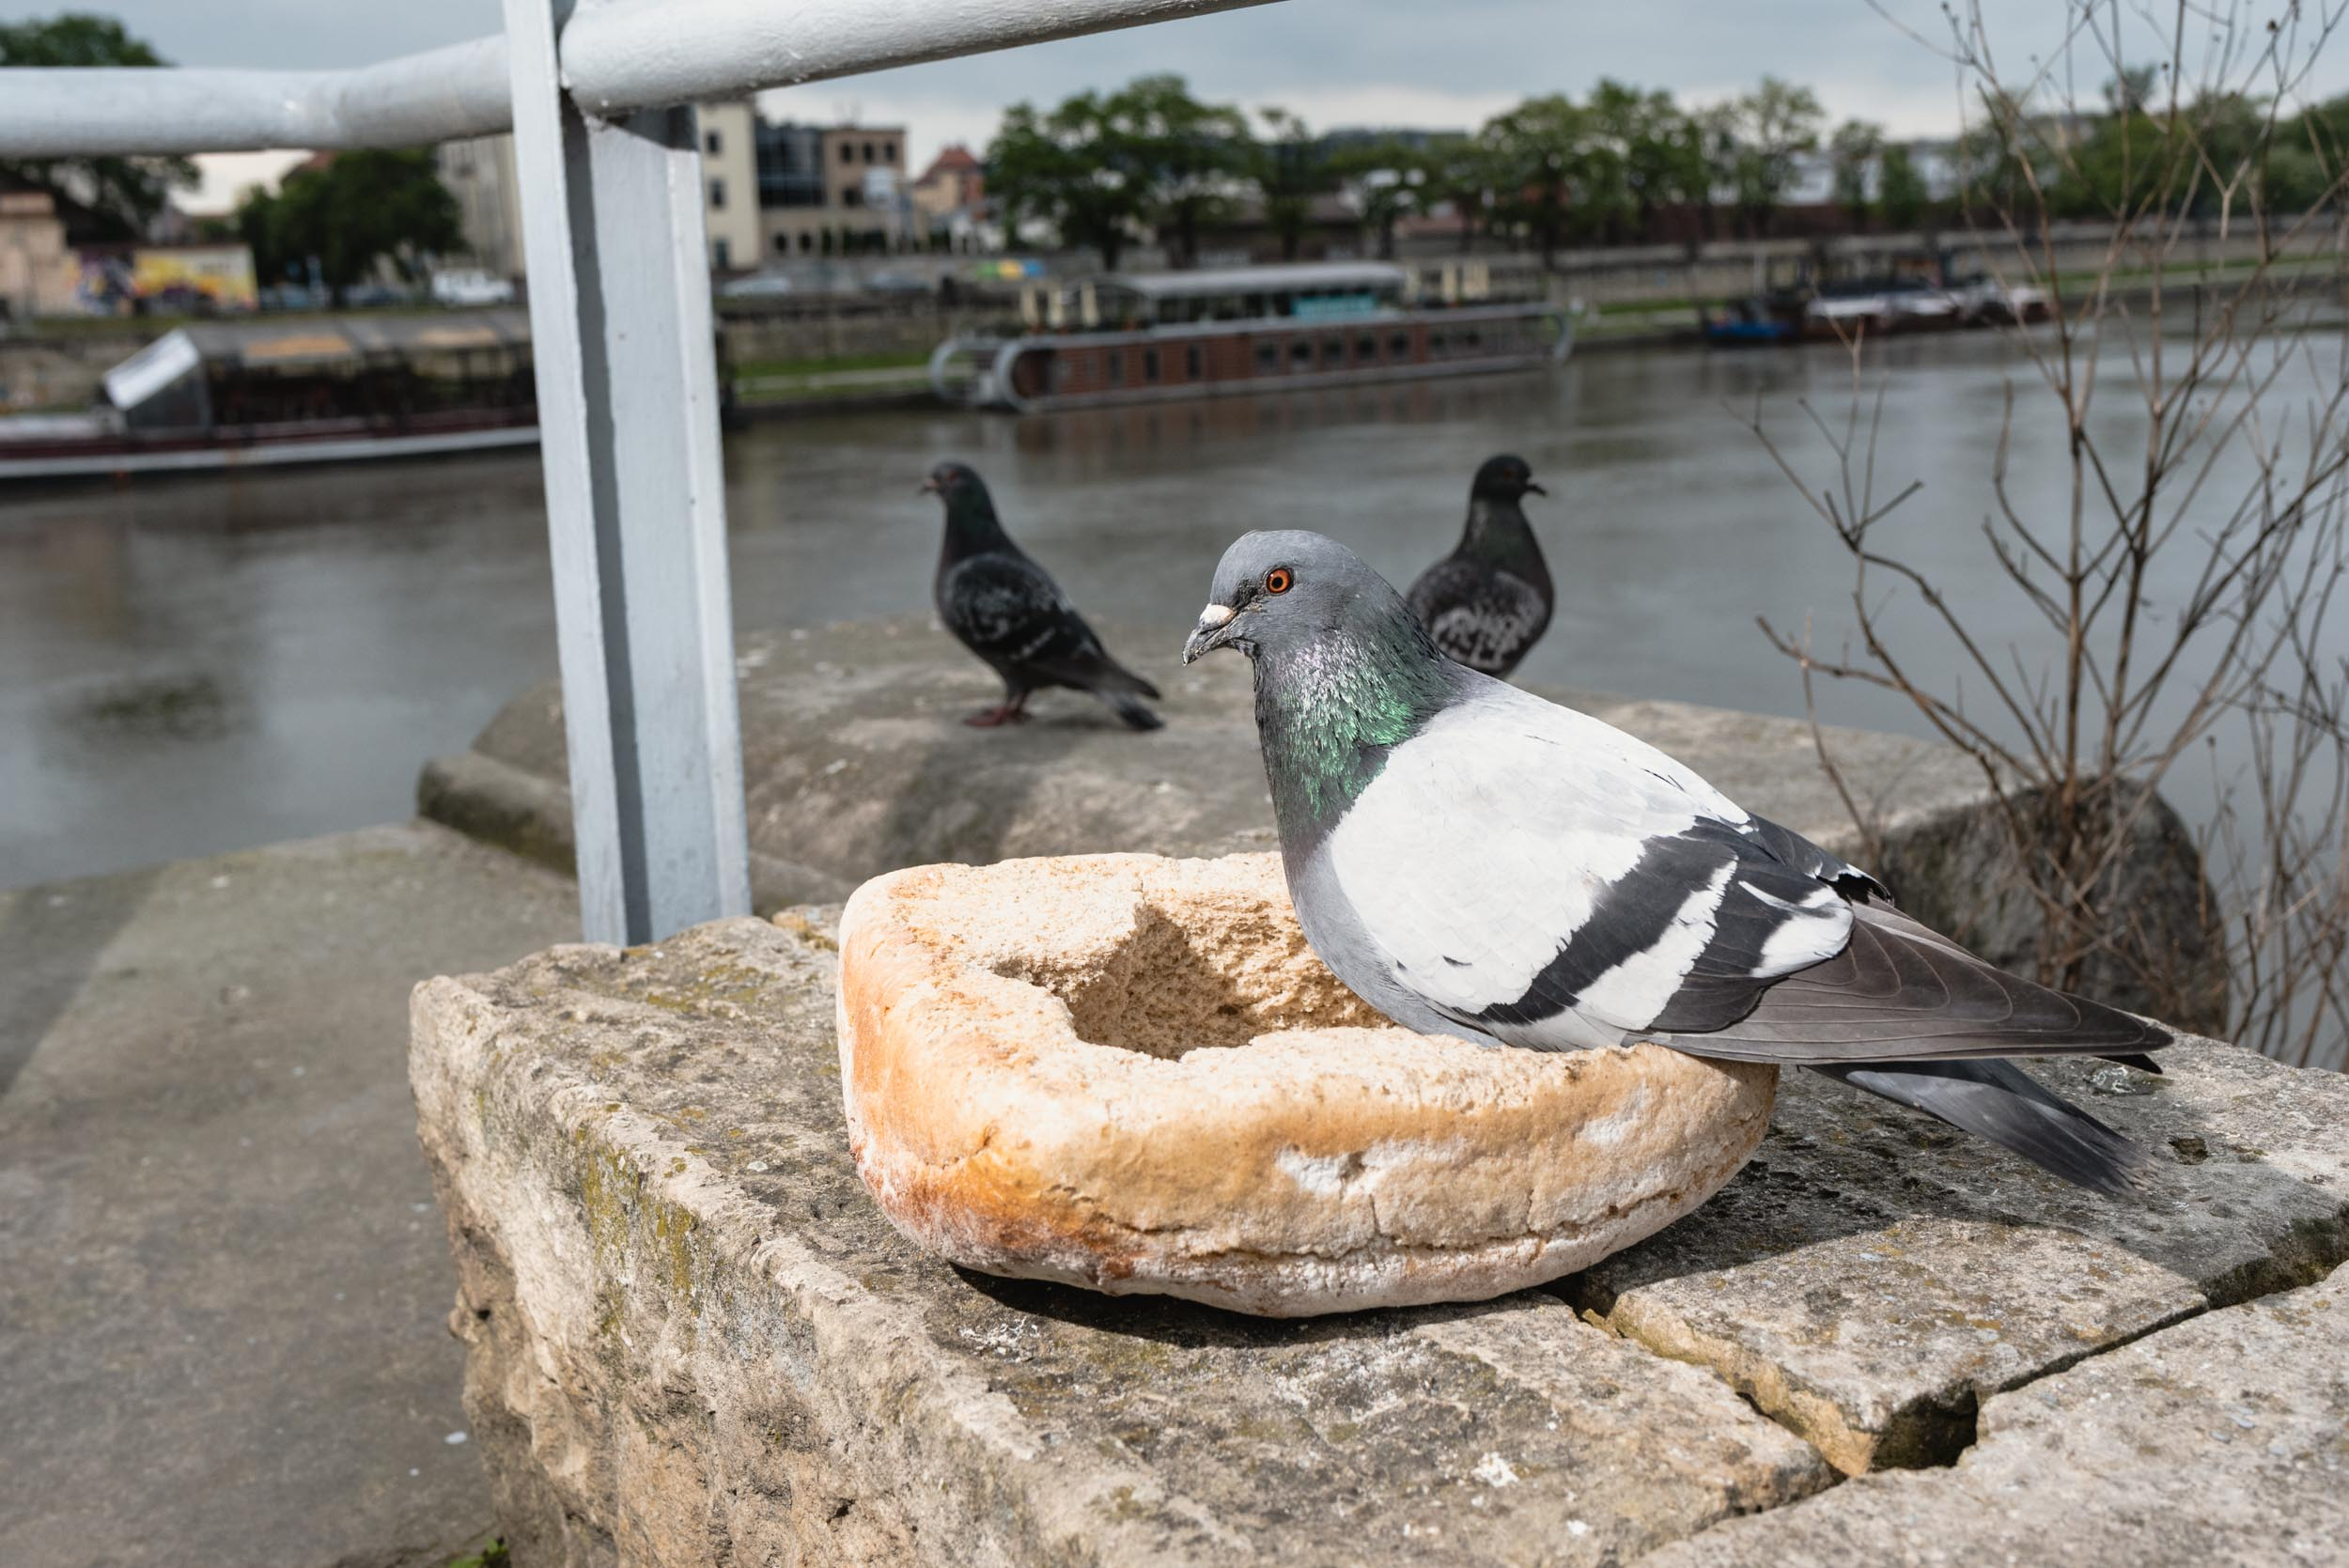 Pigeon sitting in bread bowl